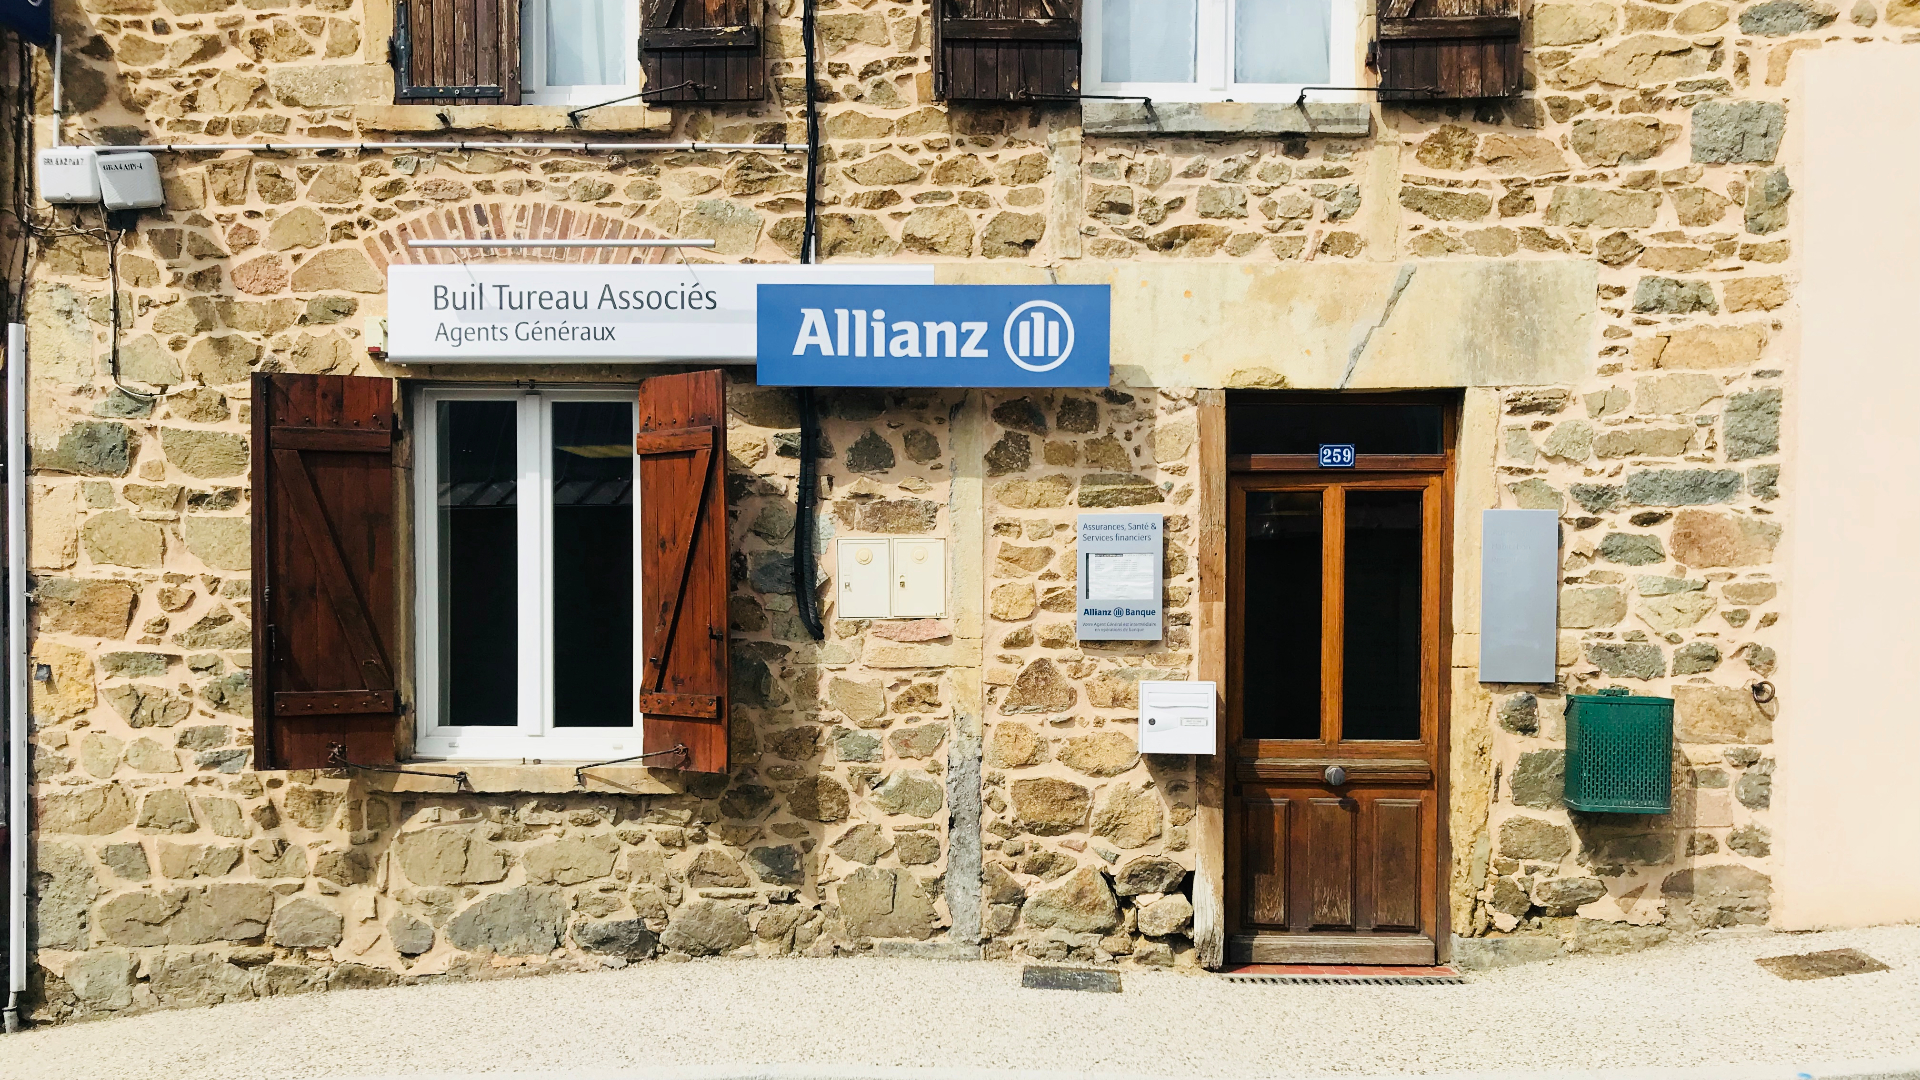 Allianz Grandris - Buil TUREAU CARRET ASSOCIE